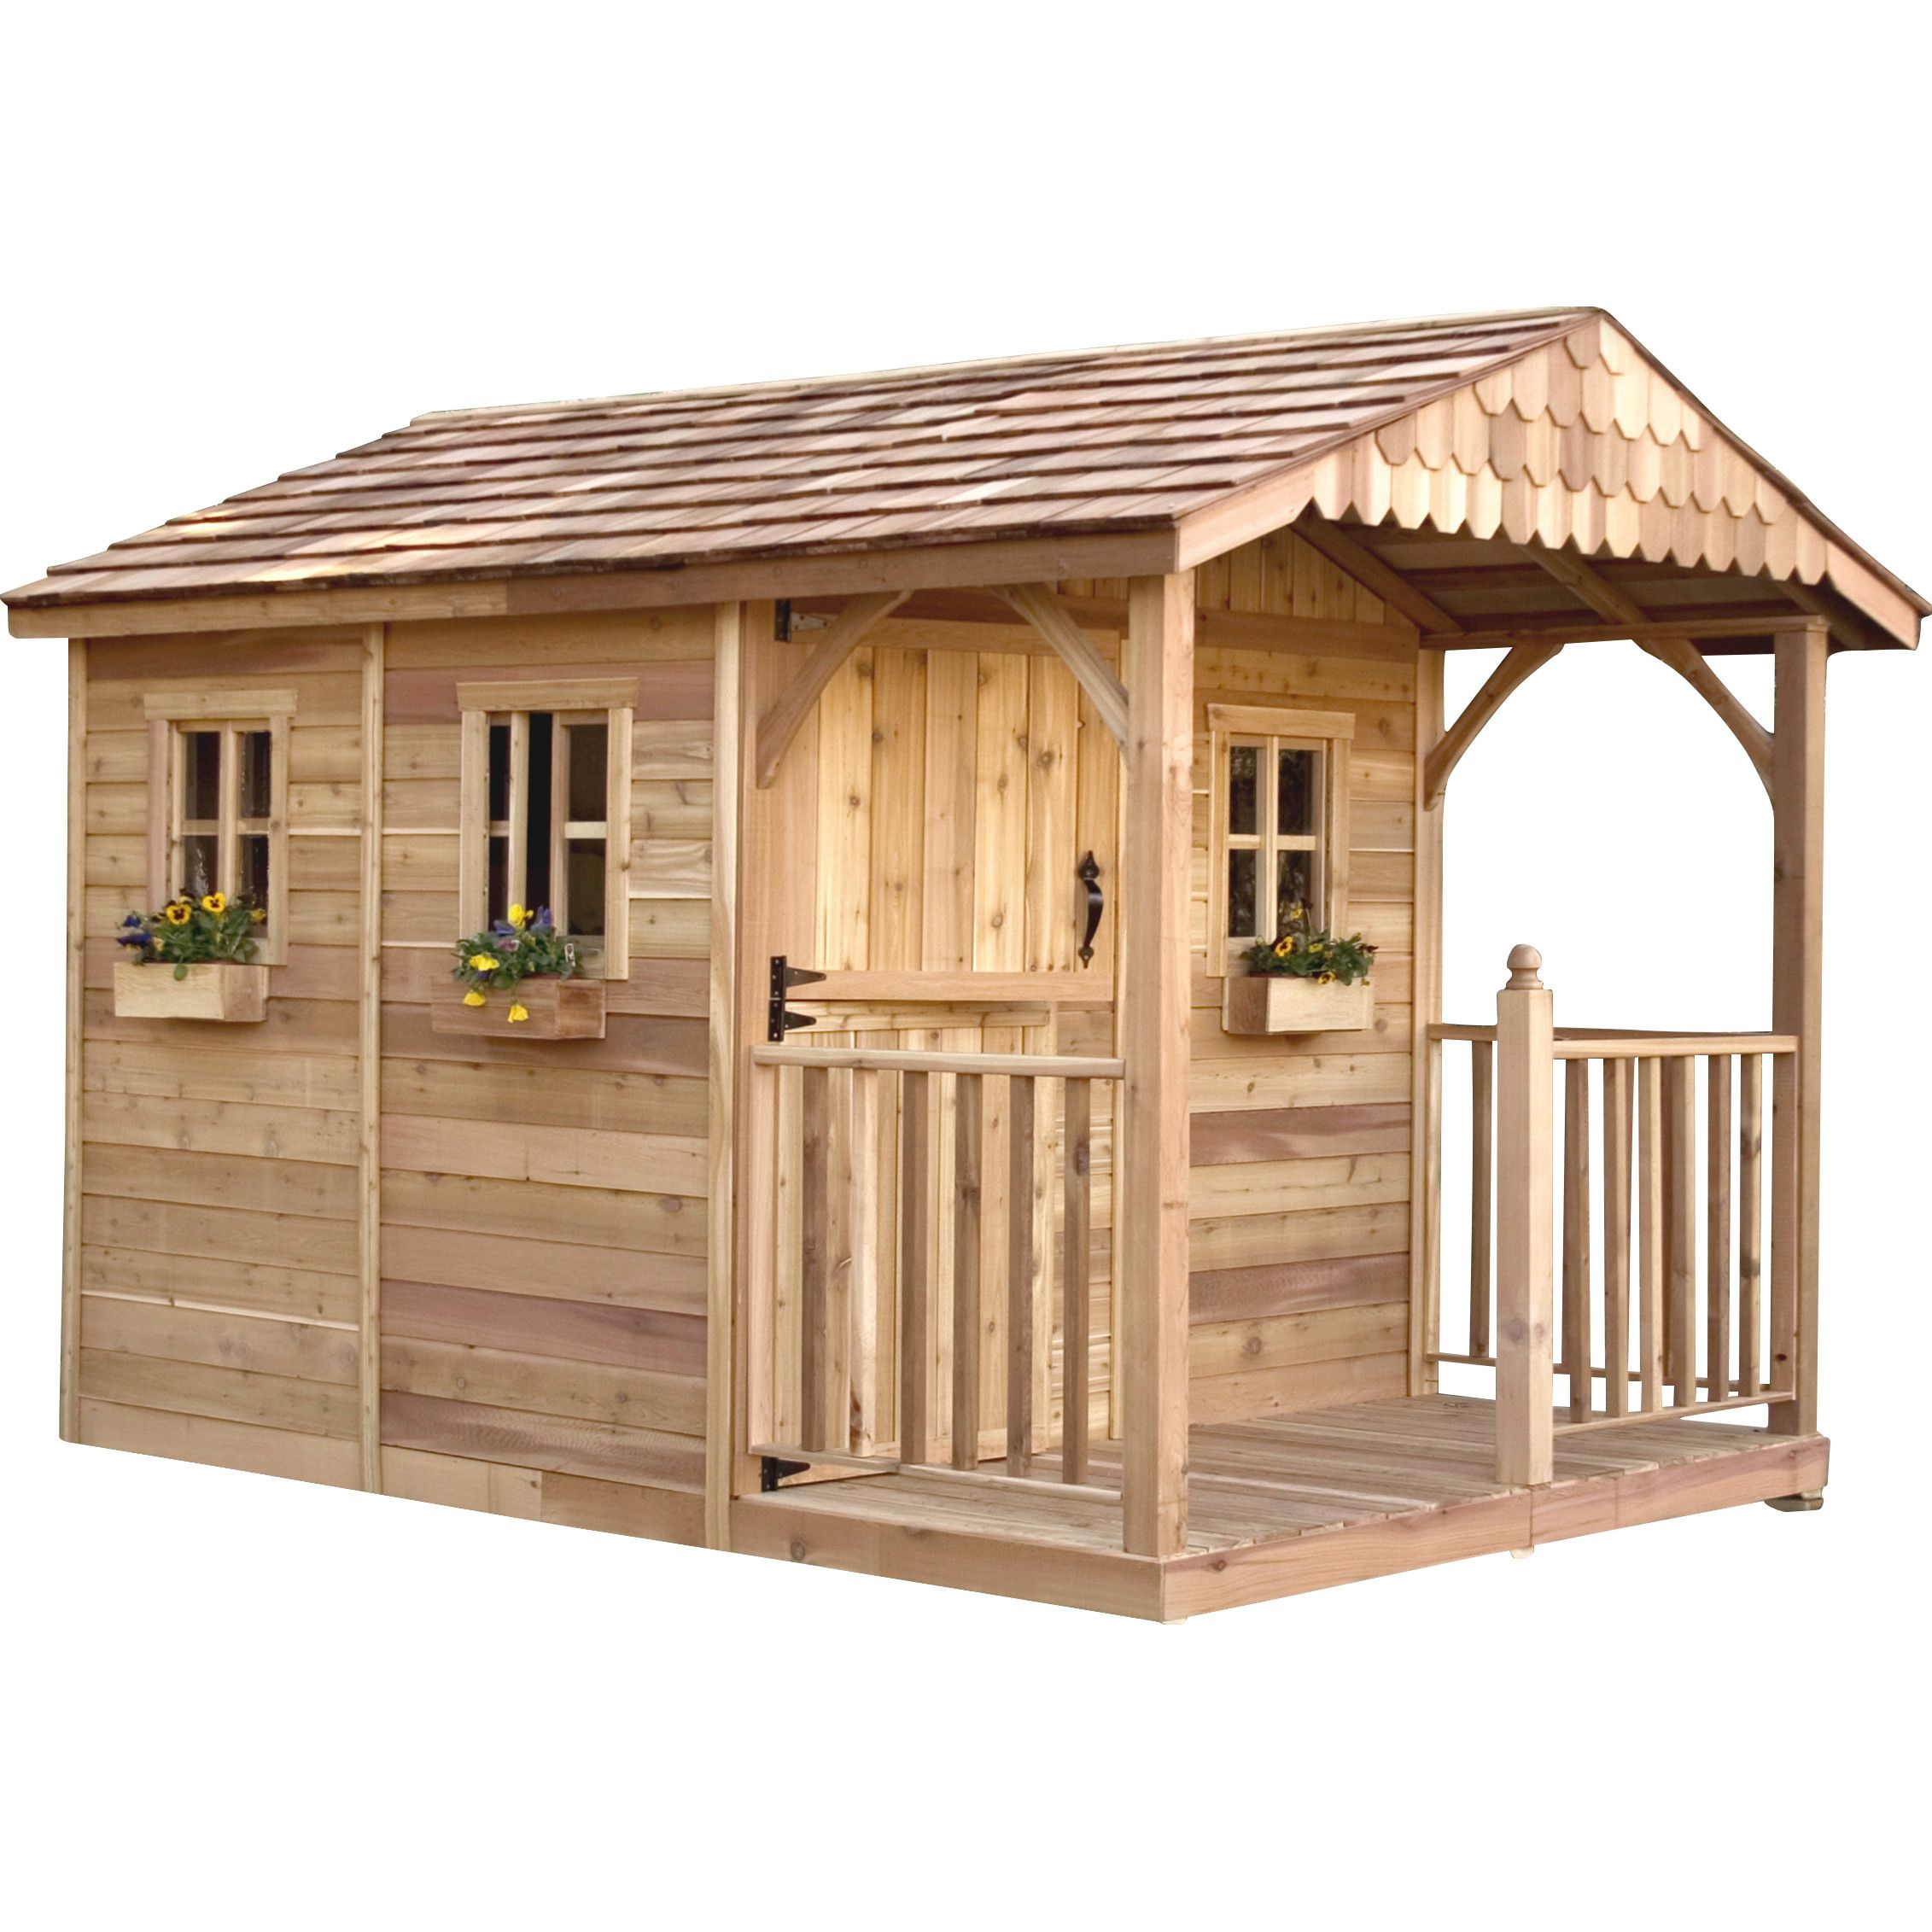 outdoor living today santa rosa 8 ft w x 12 ft d wood storage